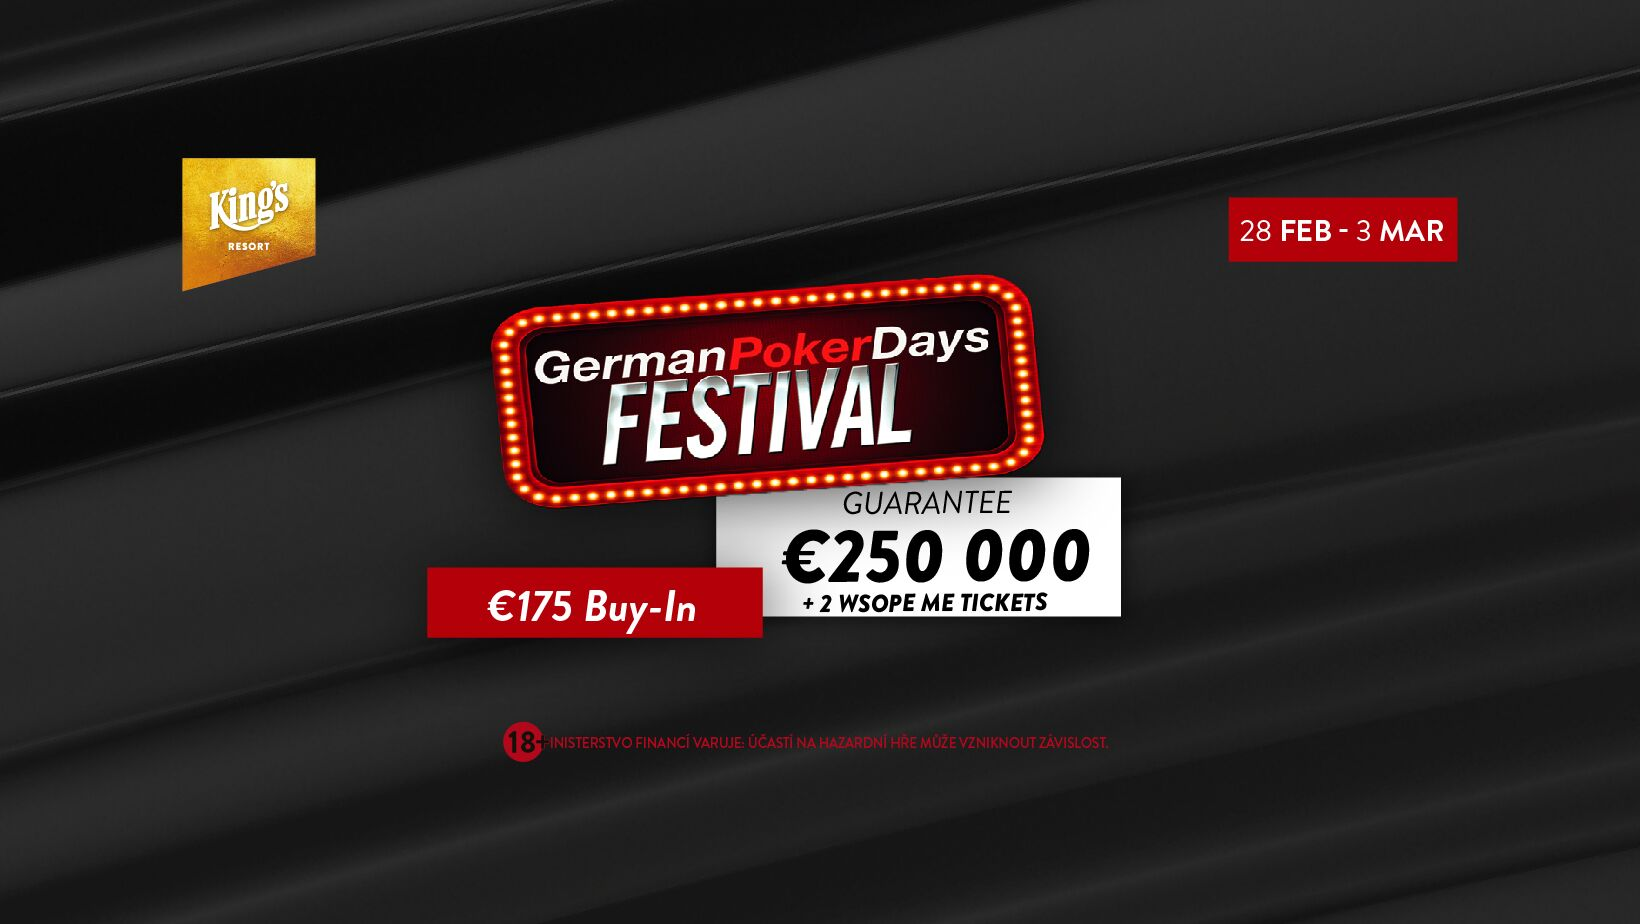 German Poker Days míří do King's příští týden